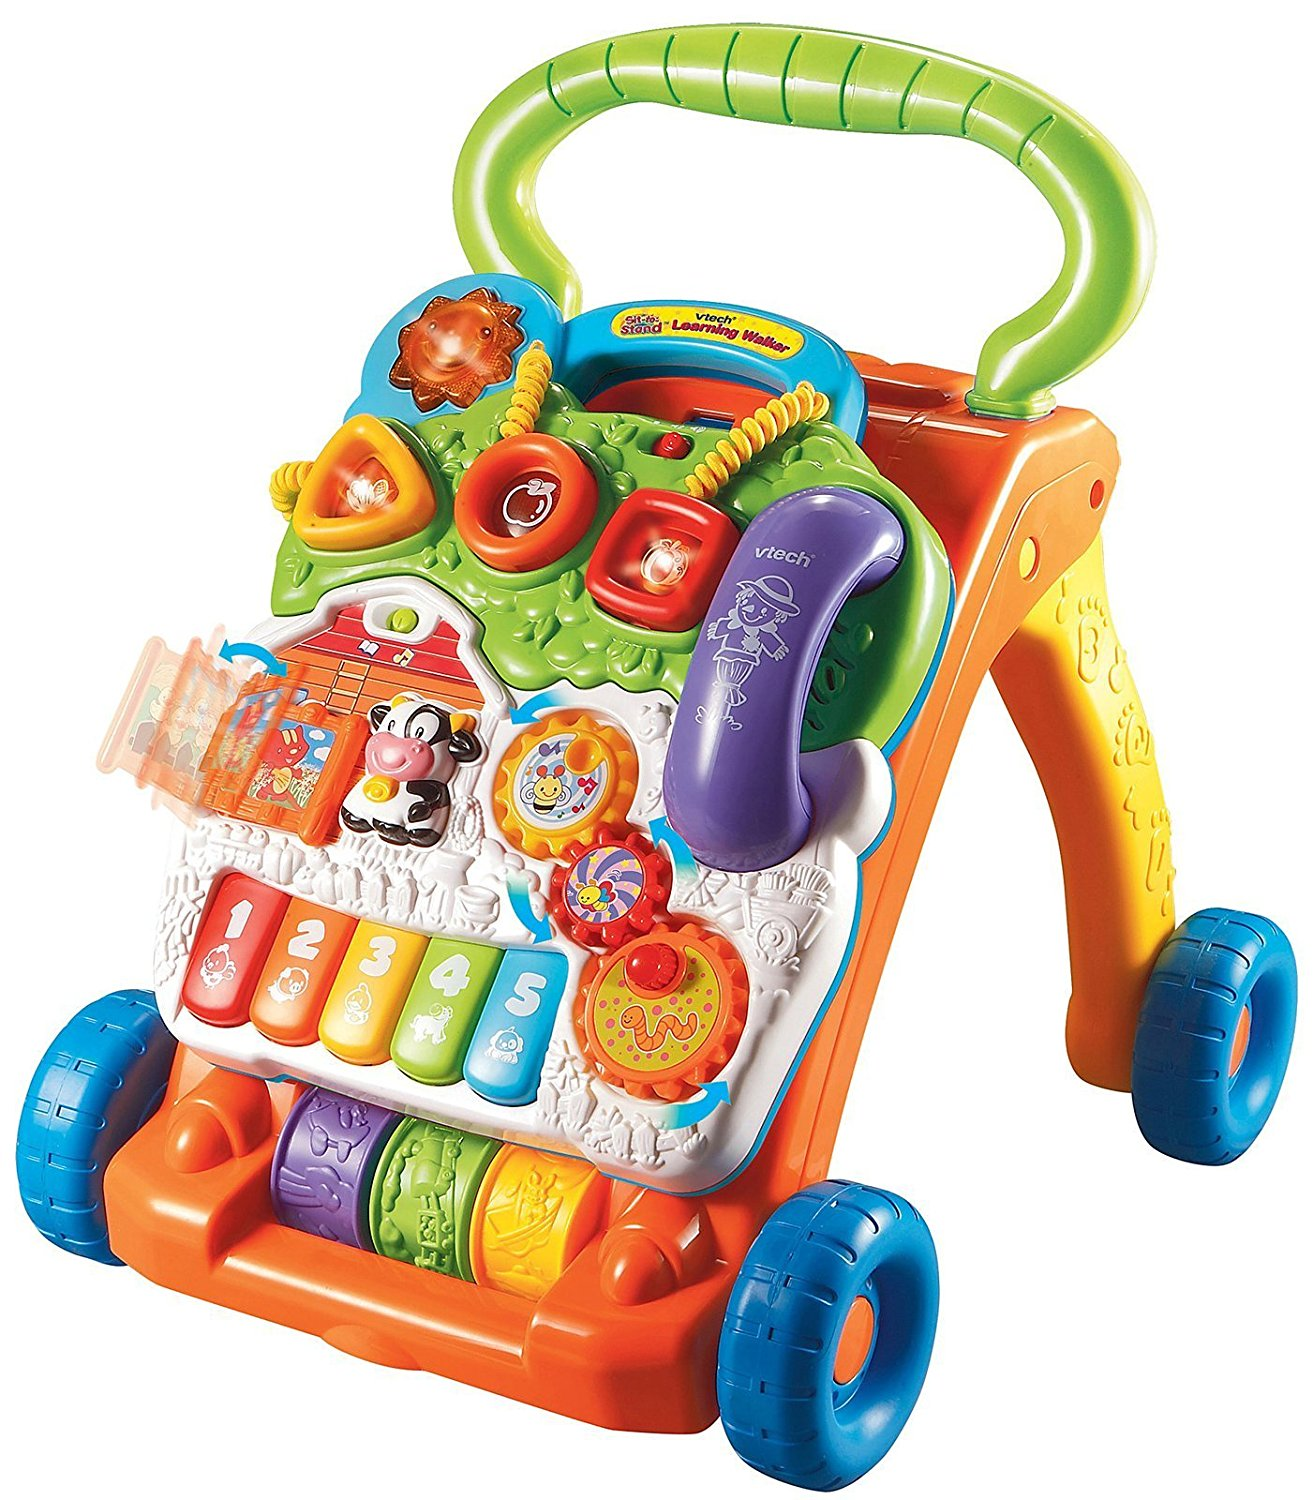 Sit-to-Stand Learning Walker, VTech Sit-to-Stand Learning Walker By VTech From USA by VTech